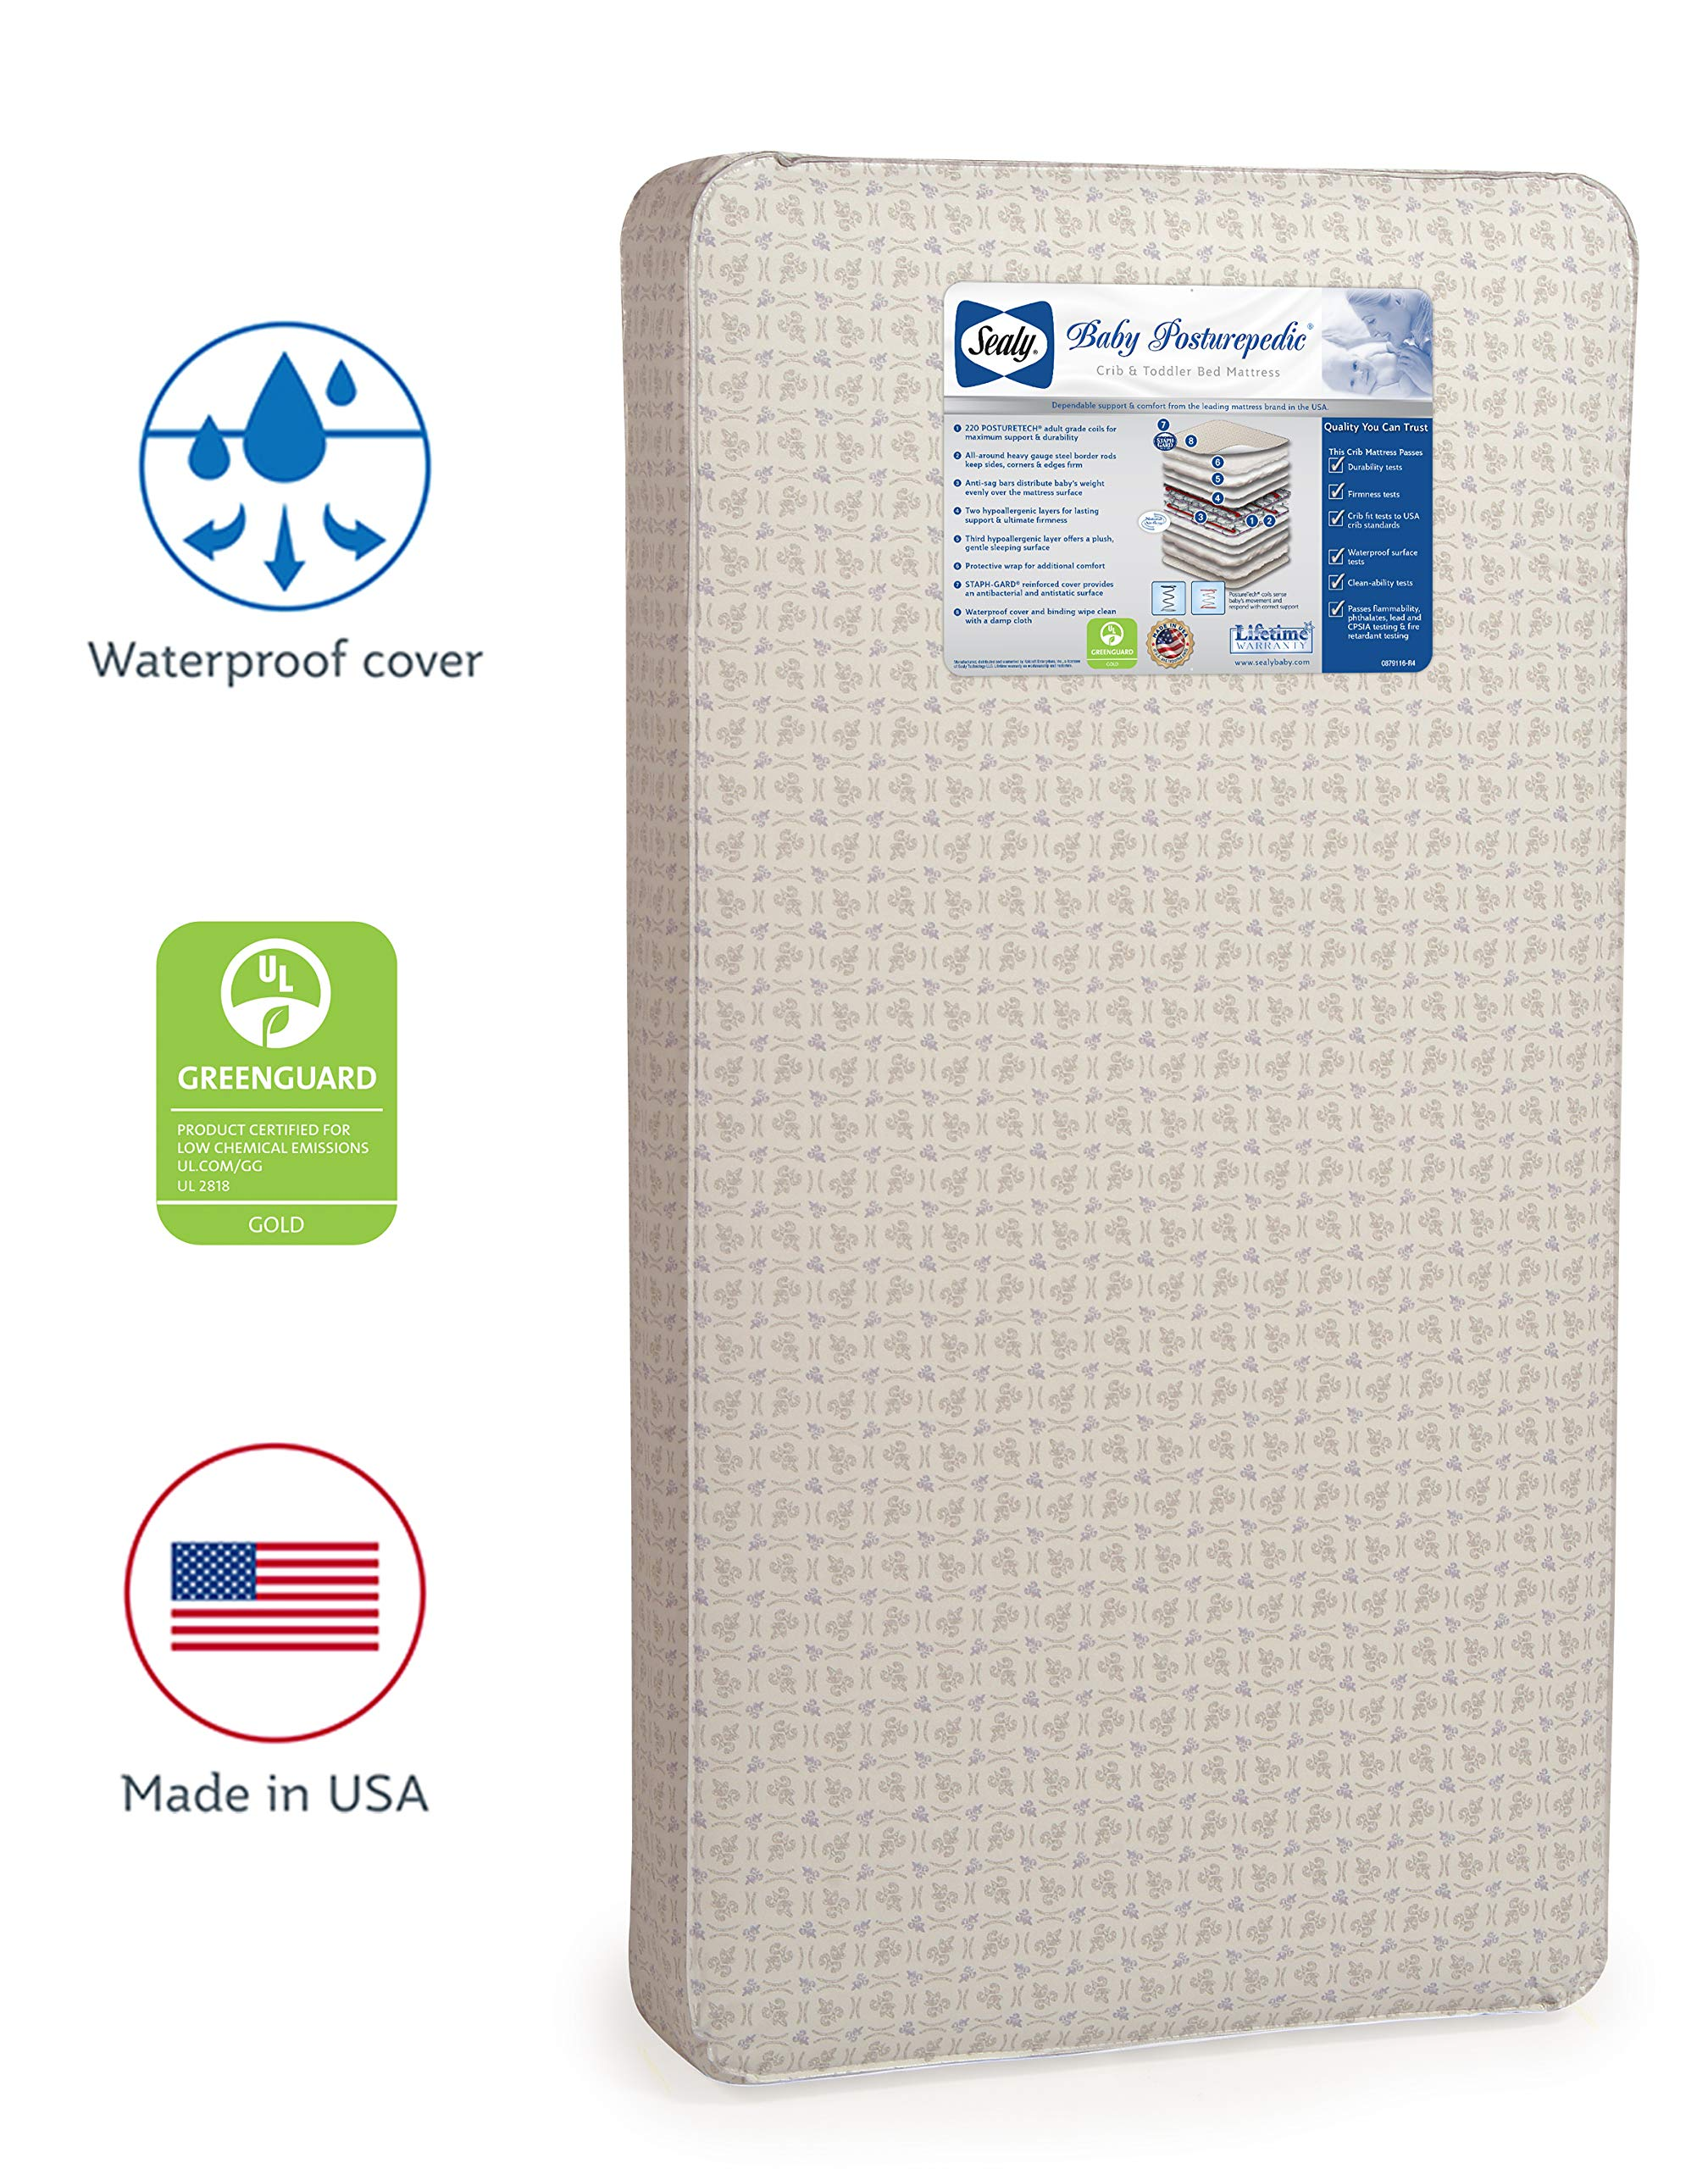 Sealy Baby Posturepedic Waterproof Standard Toddler & Baby Crib Mattress - 220 PostureTech Sensory Coils, 51.63'' x 27.25'' by Sealy